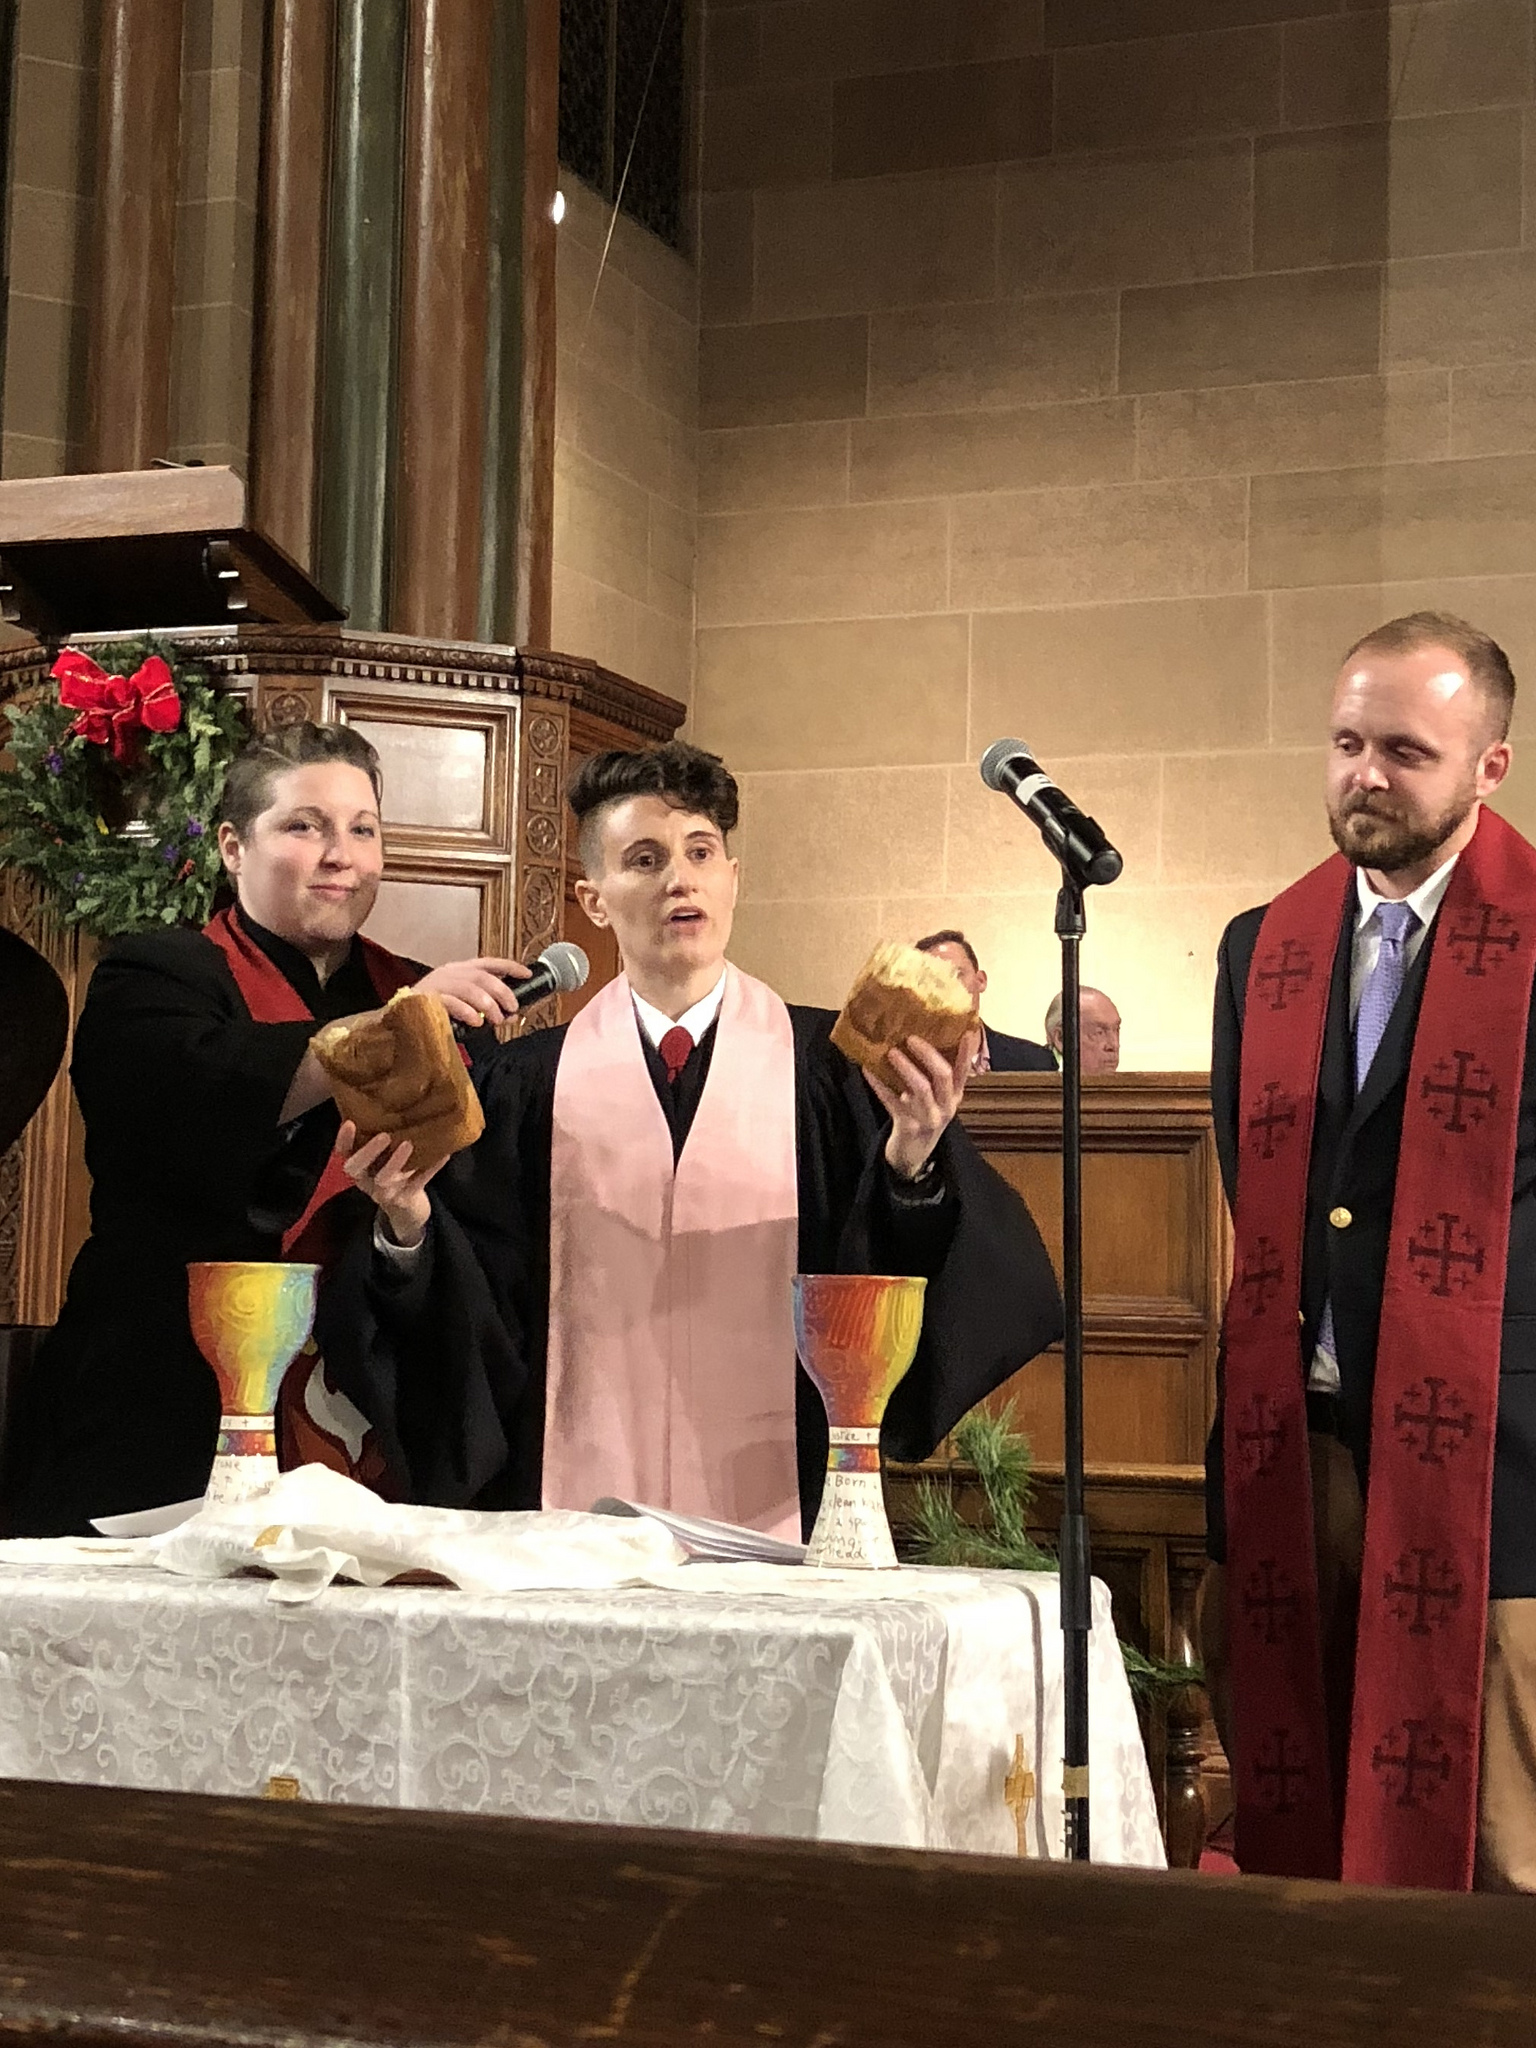 Marty's Ordination!